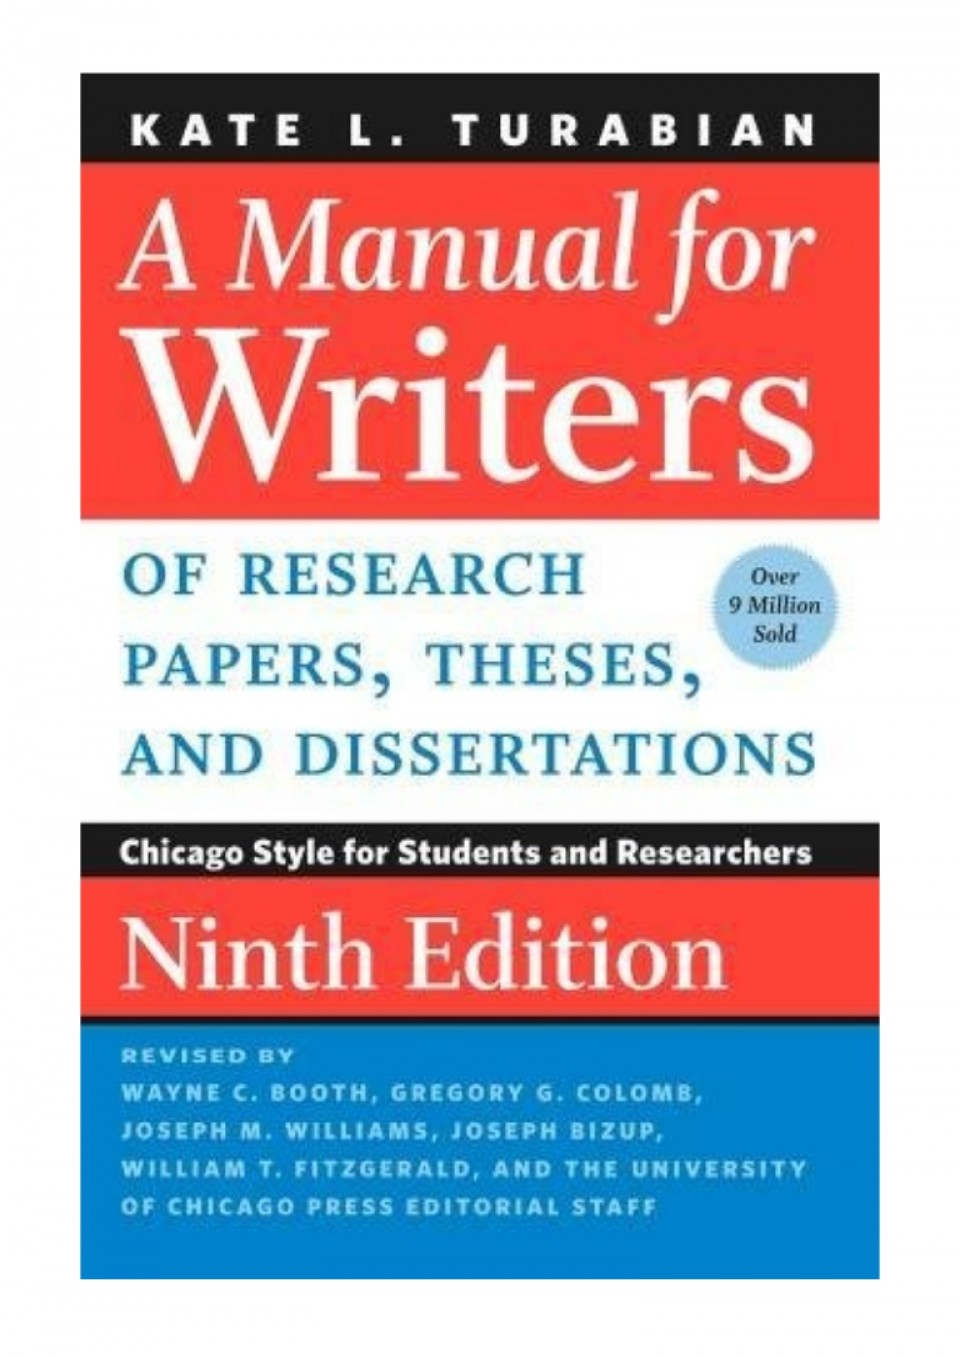 010 Manual For Writers Of Research Papers Theses And Dissertations Paper 022643057x Amanualforwritersofresearchpapersthesesanddissertationsnintheditionbykatel Thumbnail Magnificent A Amazon 9th Edition 8th 13 960